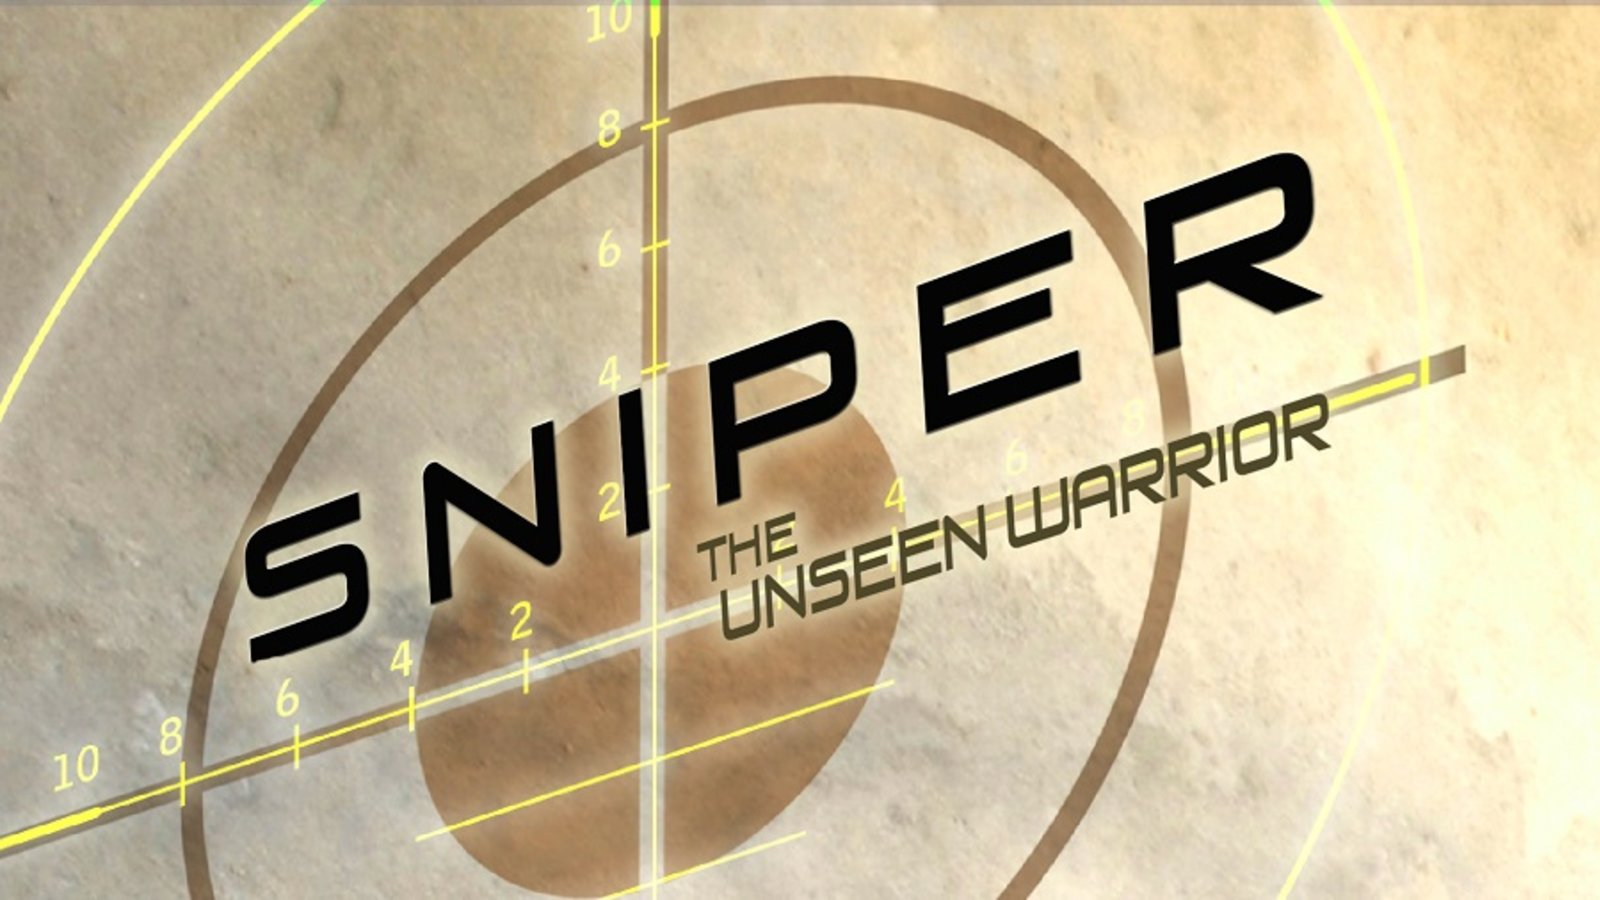 Who is The Sniper?